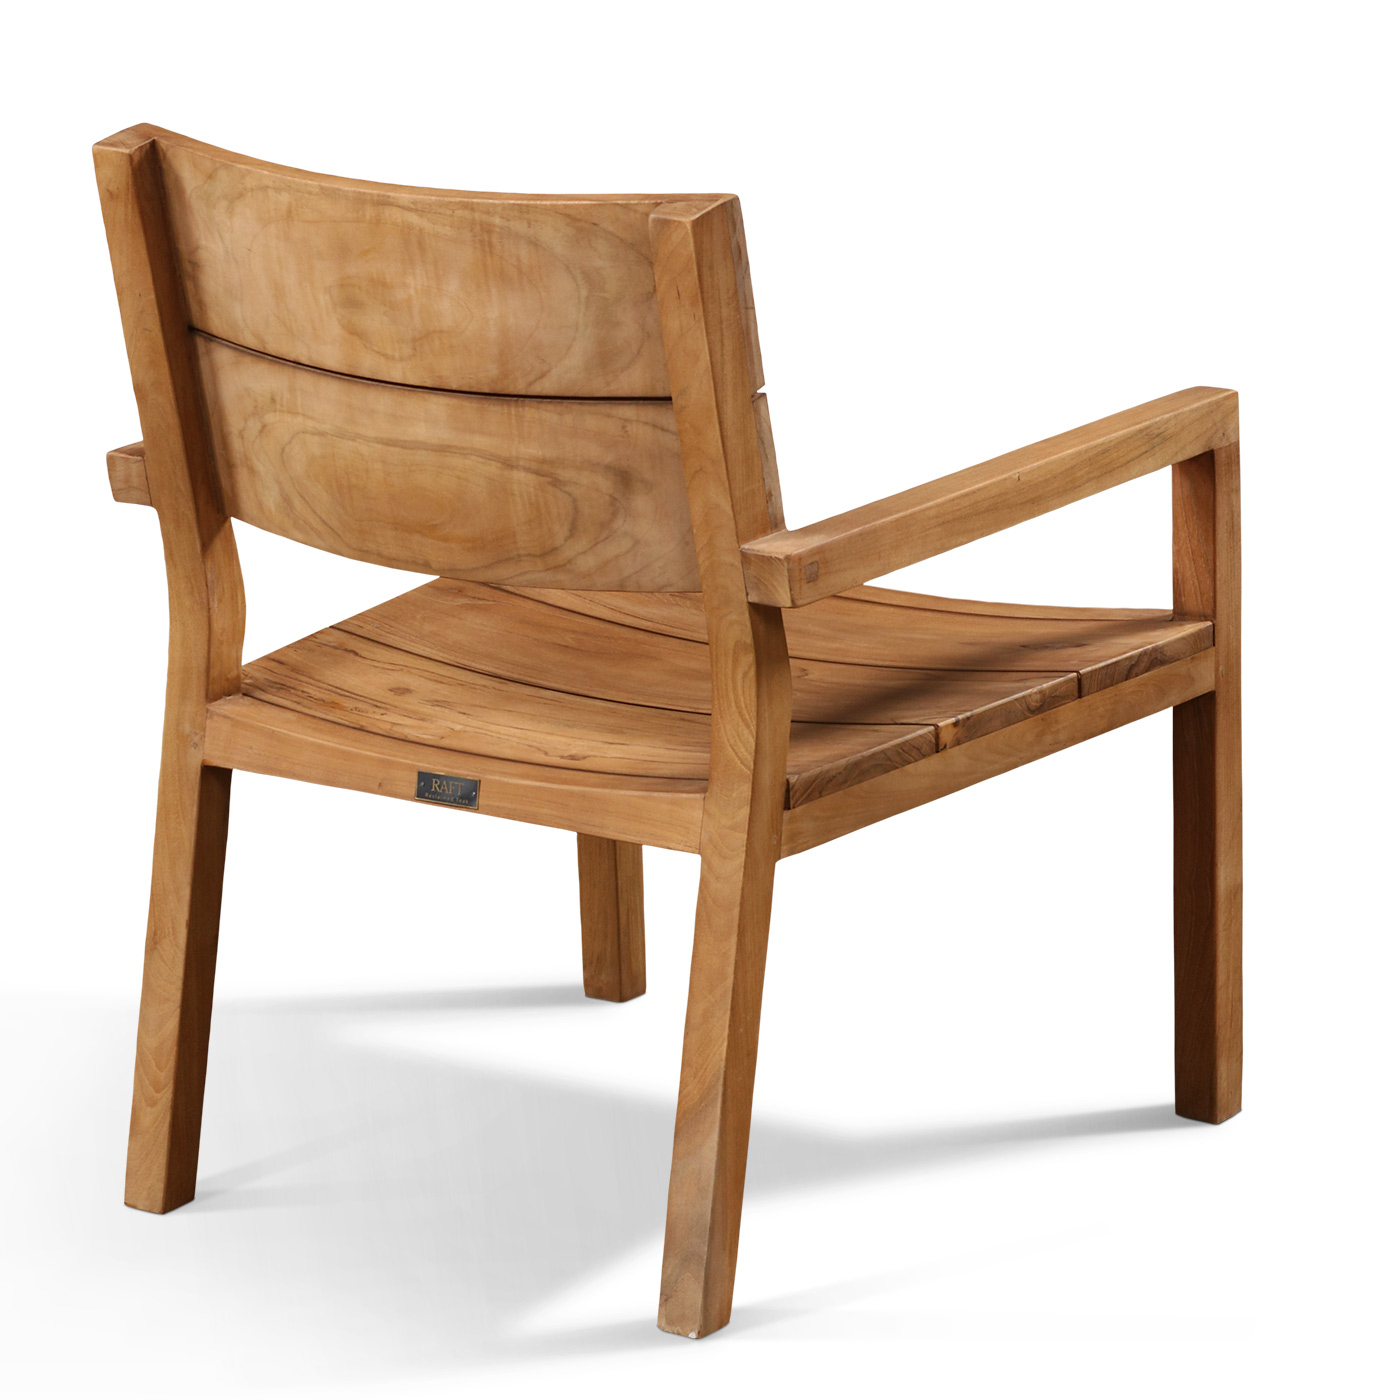 Image of: Simple Teak Lounge Chair